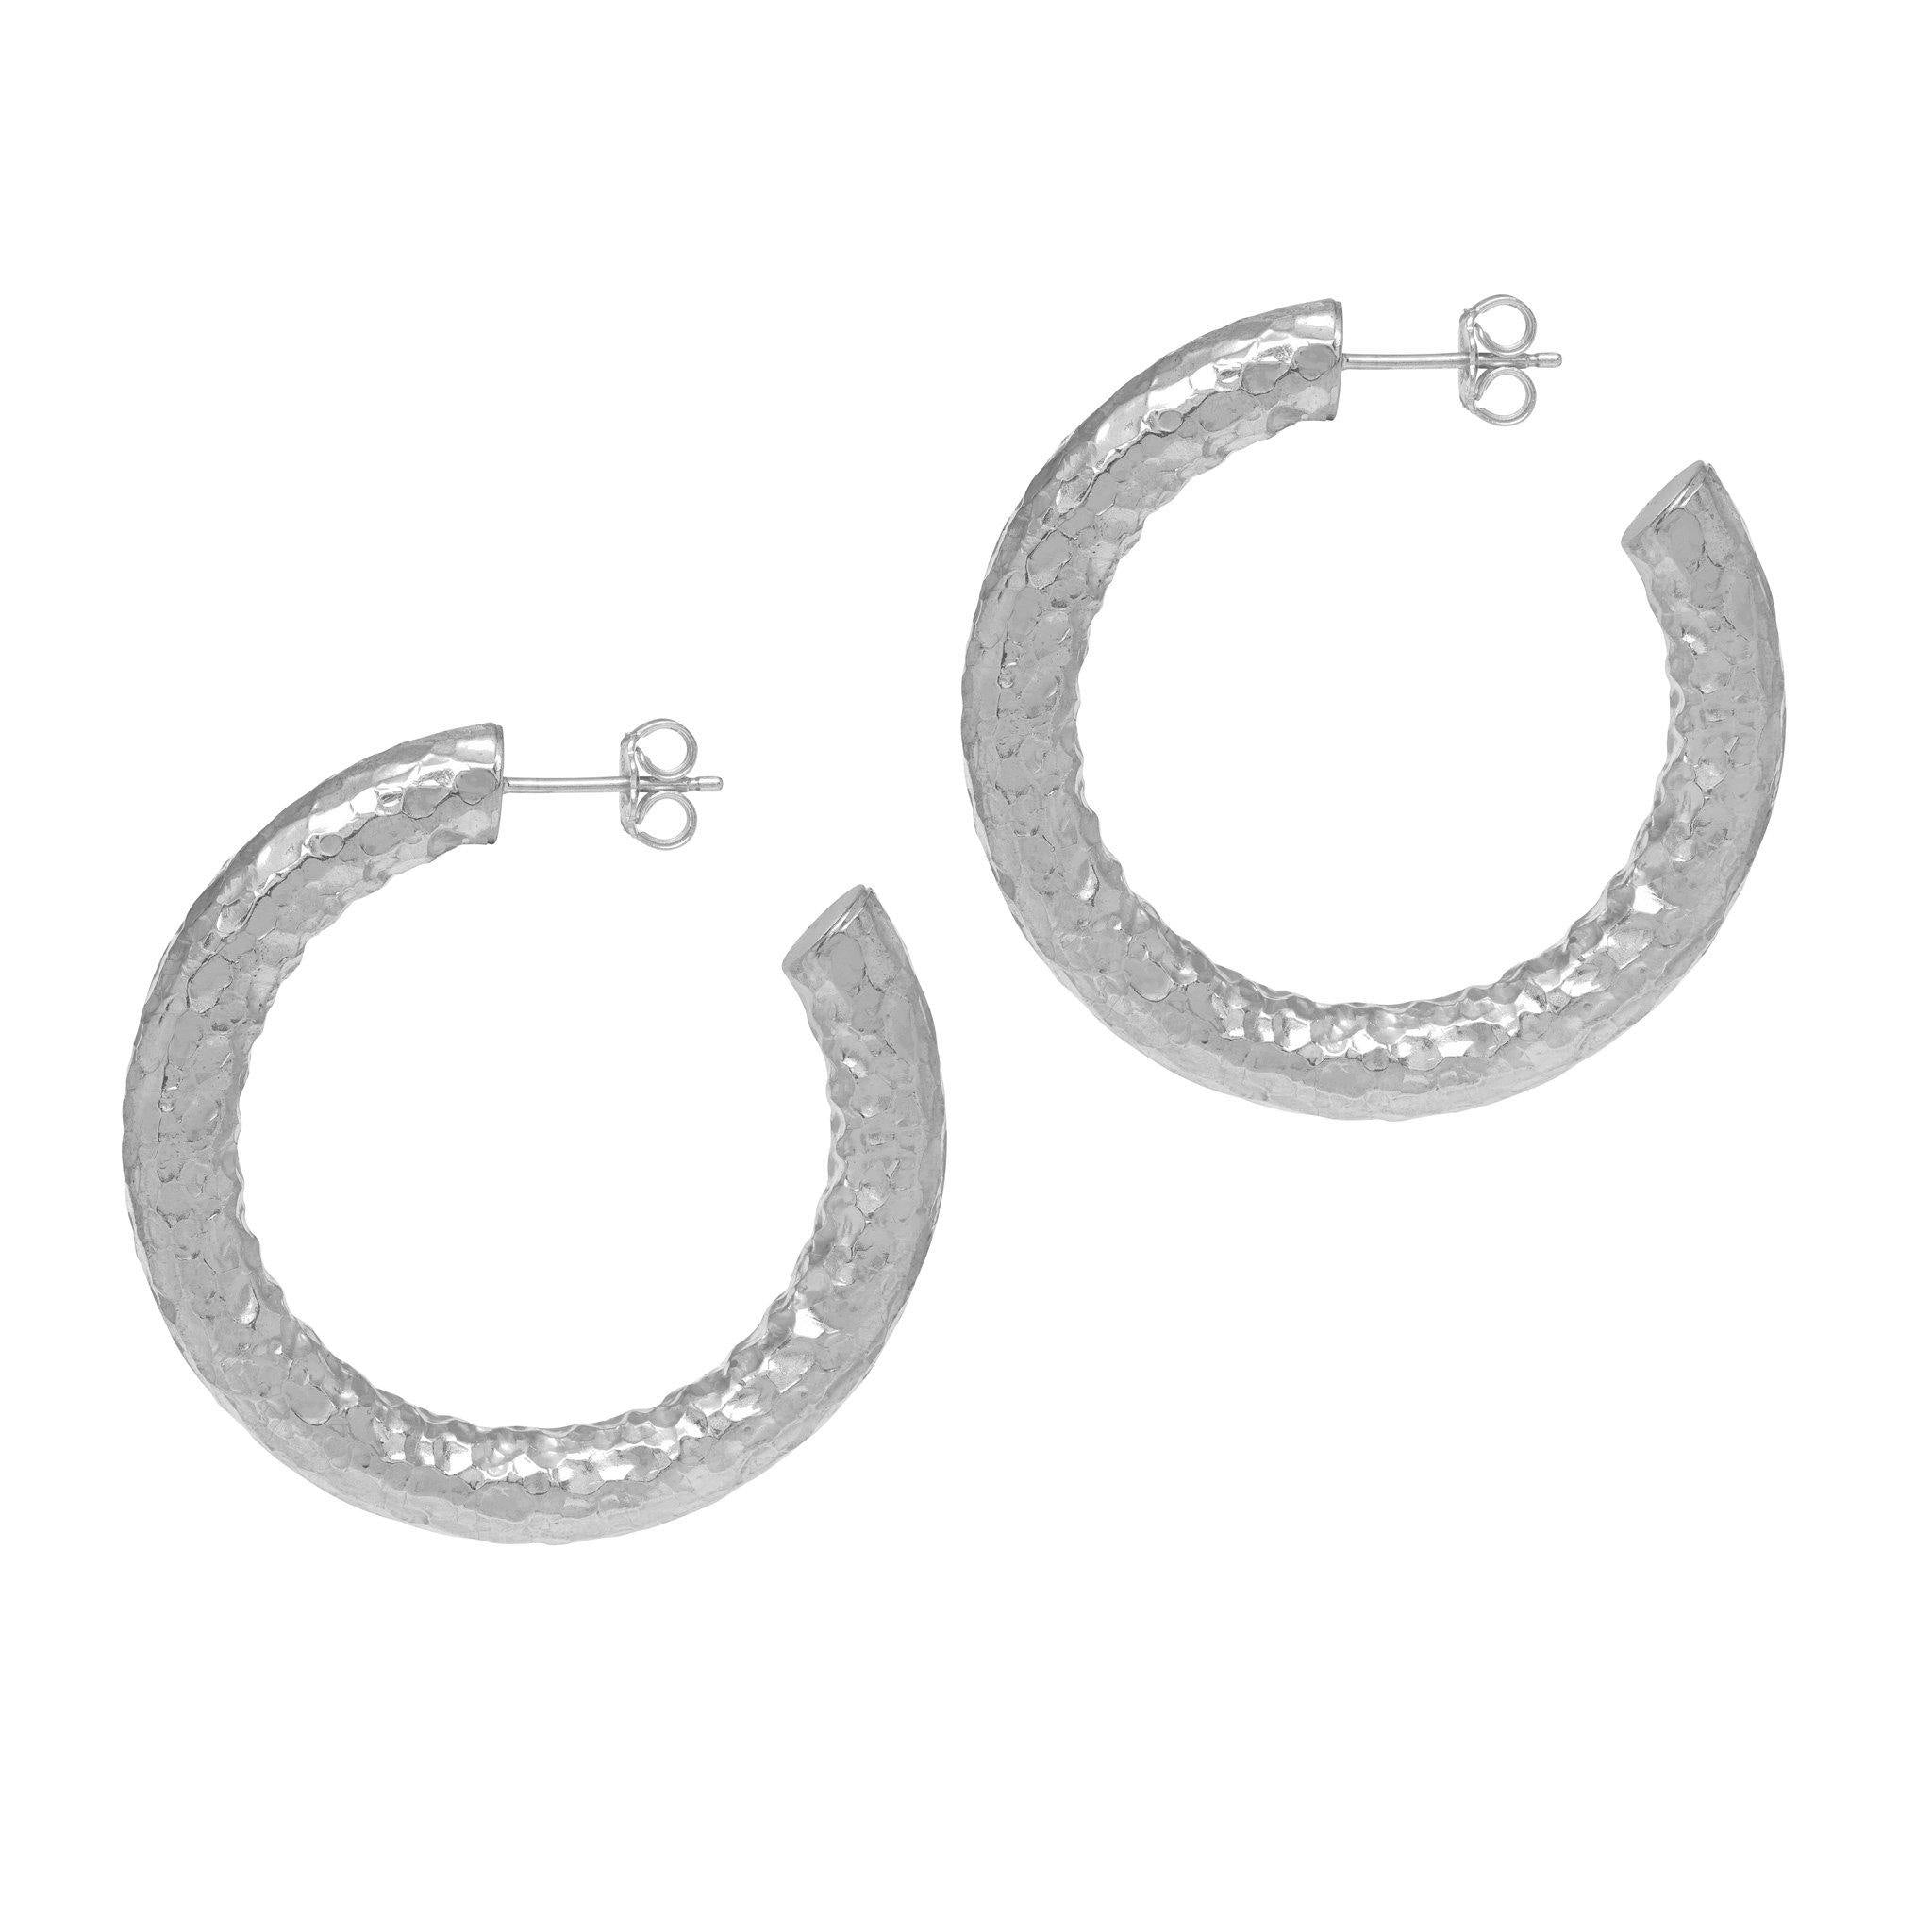 La CHUNKY SERPENTE Silver Hoops - SALE - The Hoop Station 925 Sterling Silver Hoop Earrings Gold Huggies